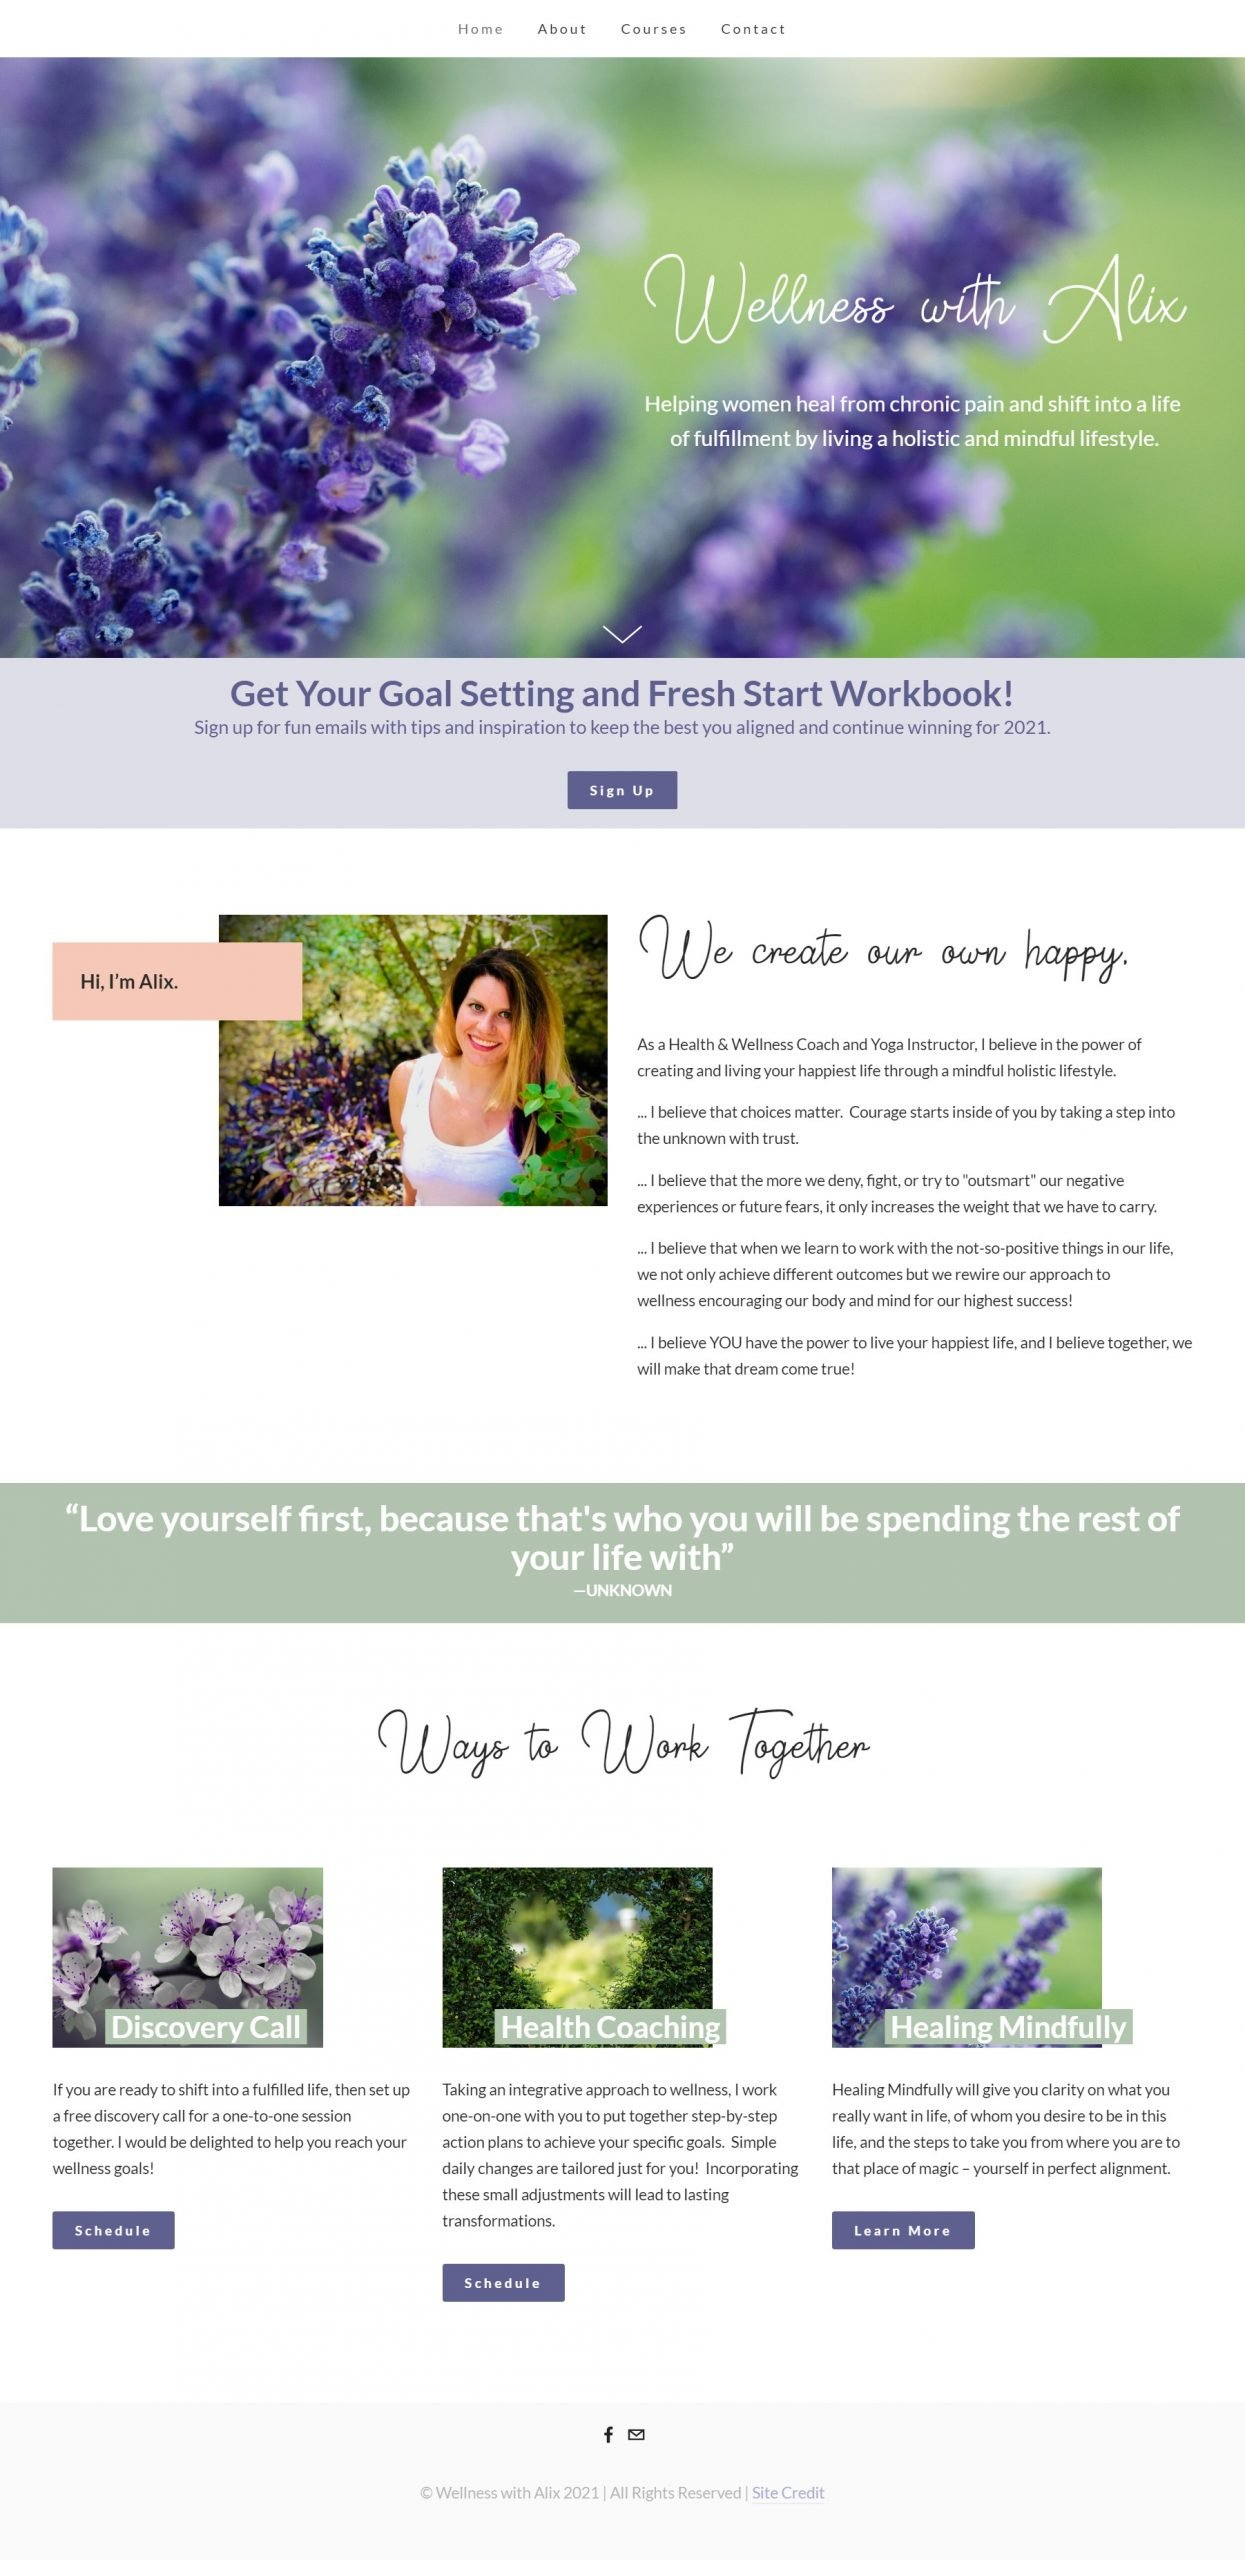 Wellness with Alix Home Page